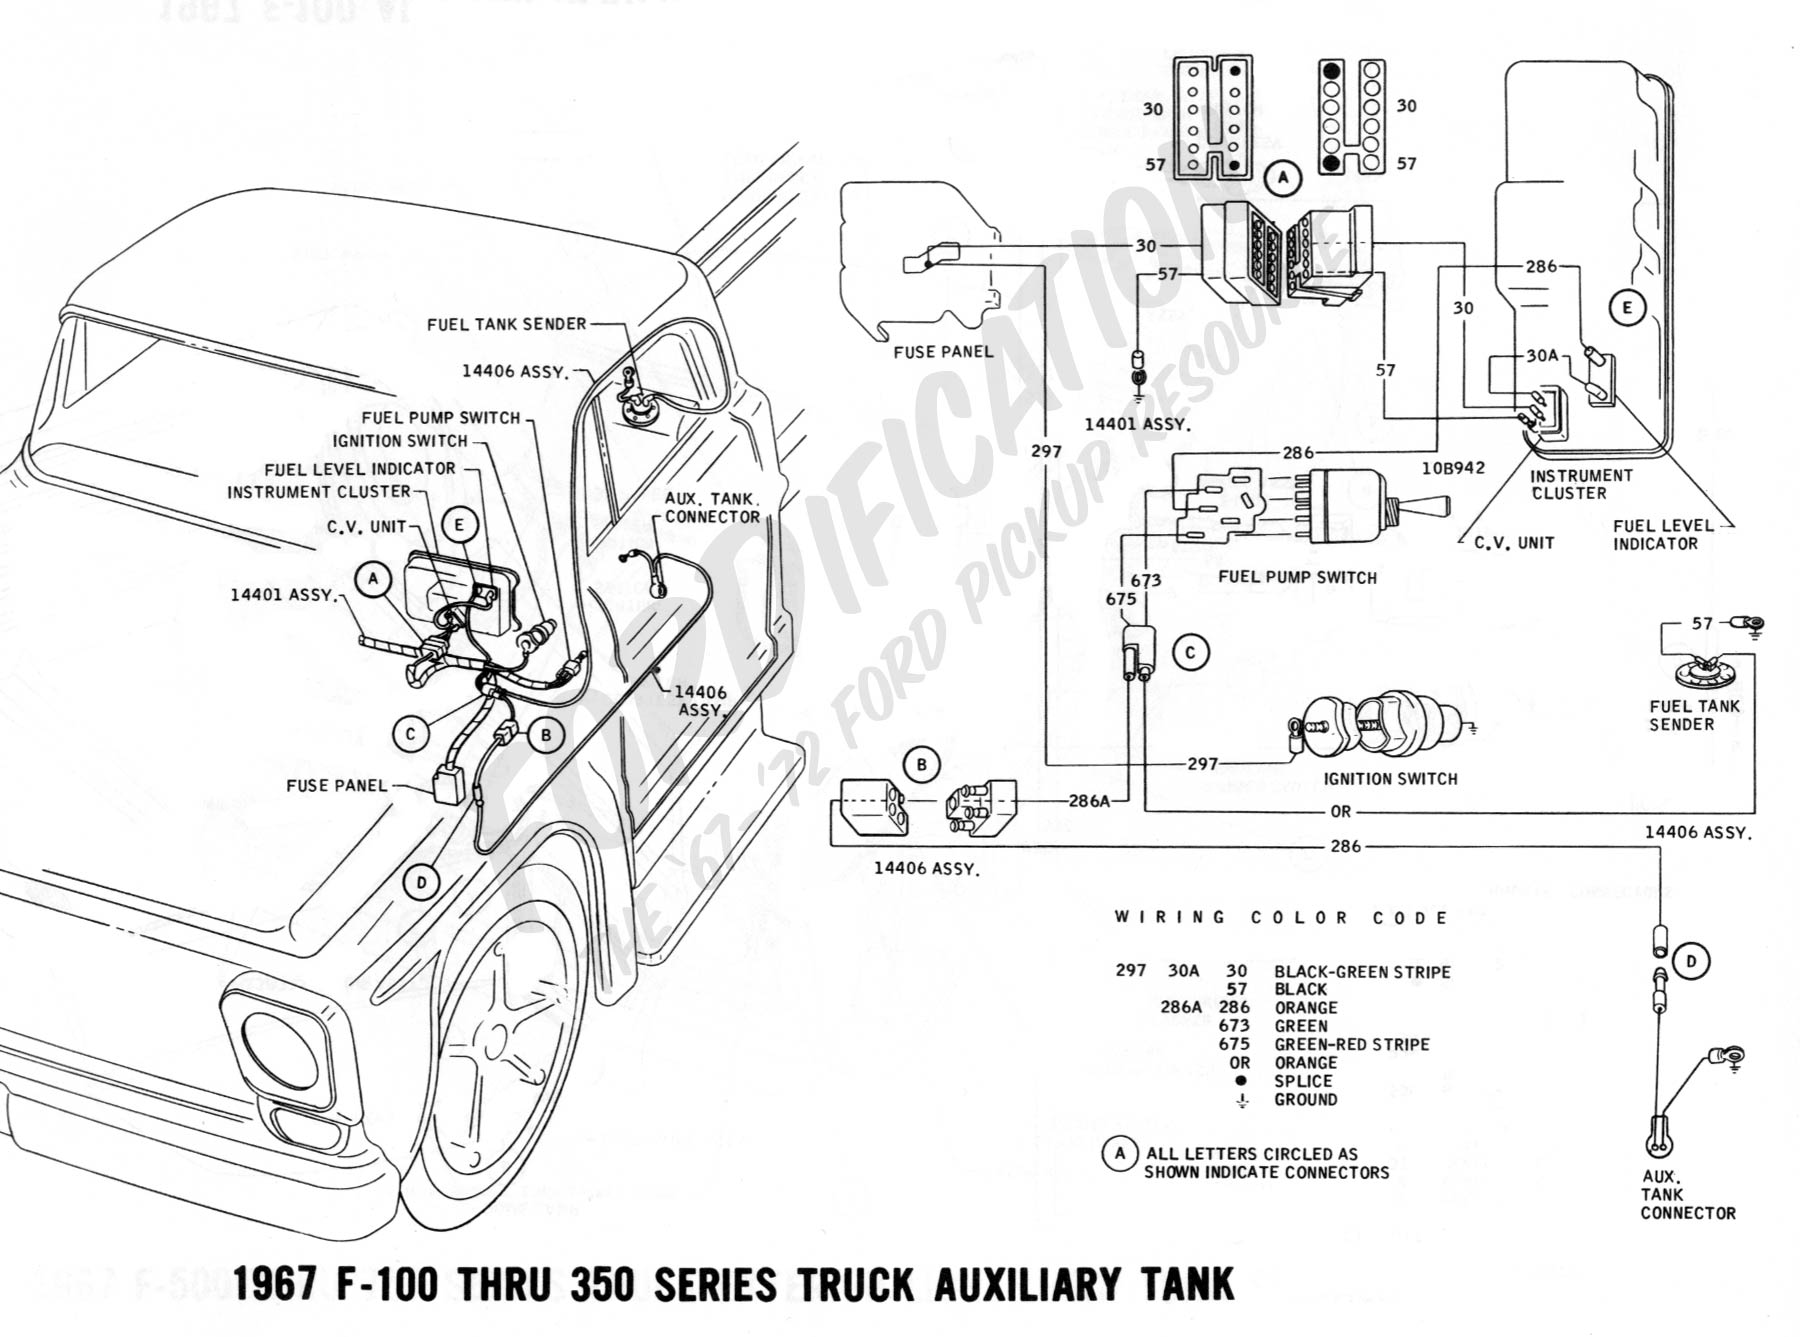 Ford Ranger Fuel System Diagram